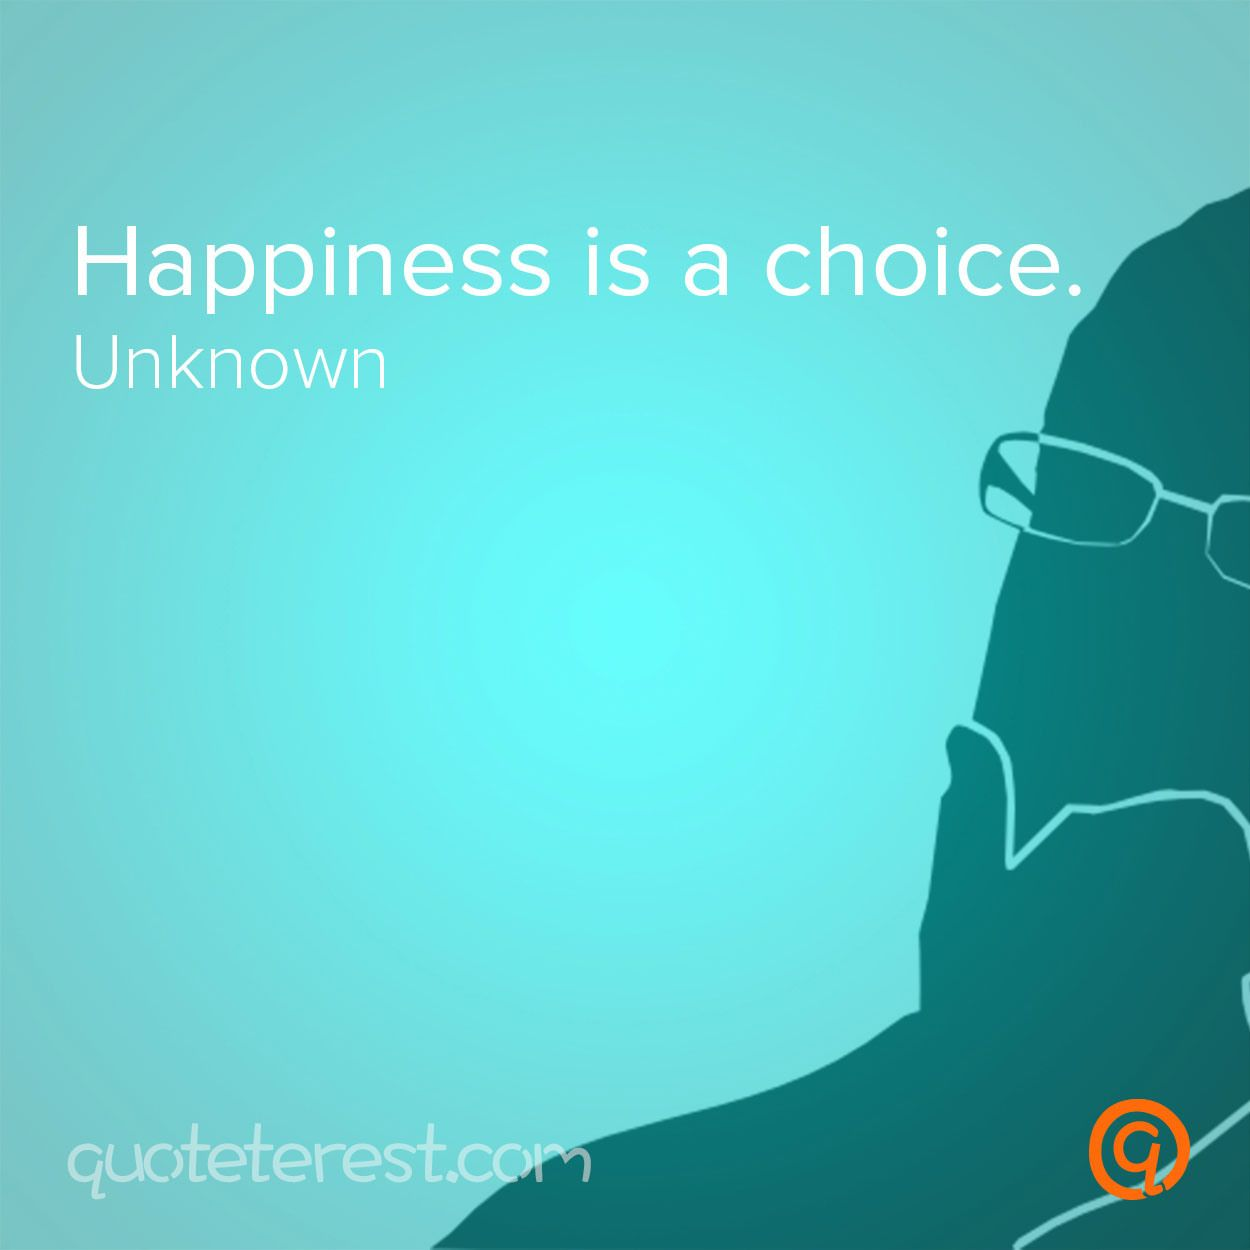 Happiness is a choice. - Author Unknown